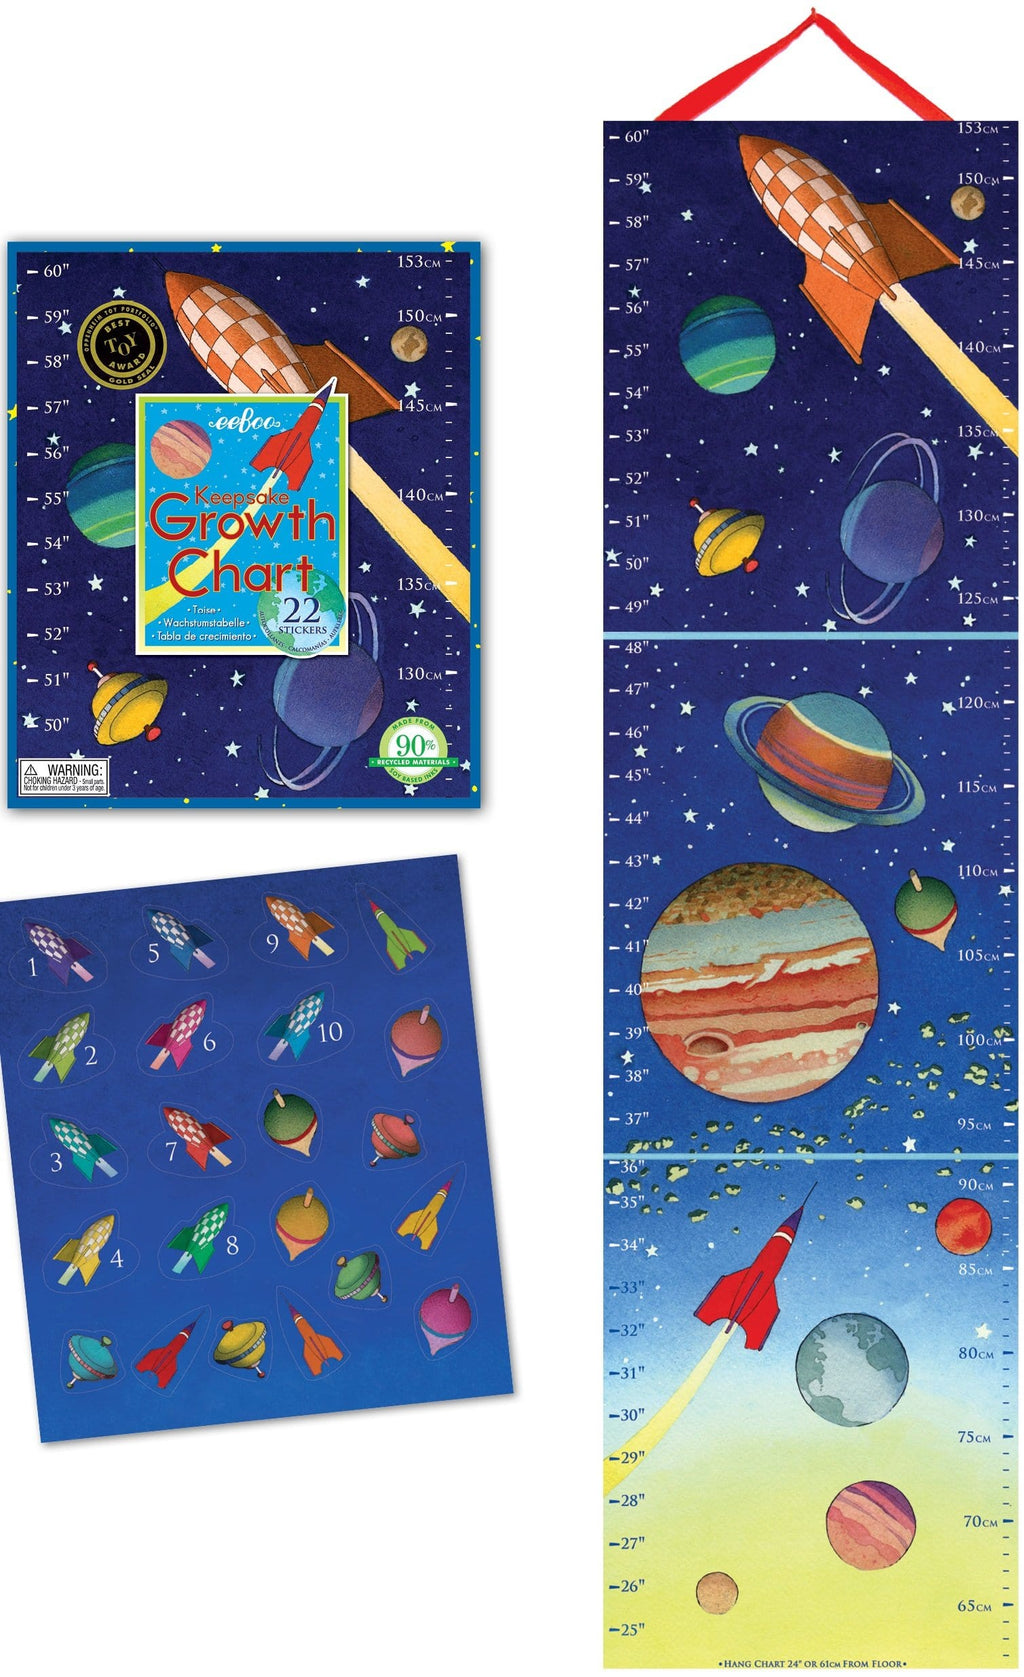 Outer Space Growth Chart E